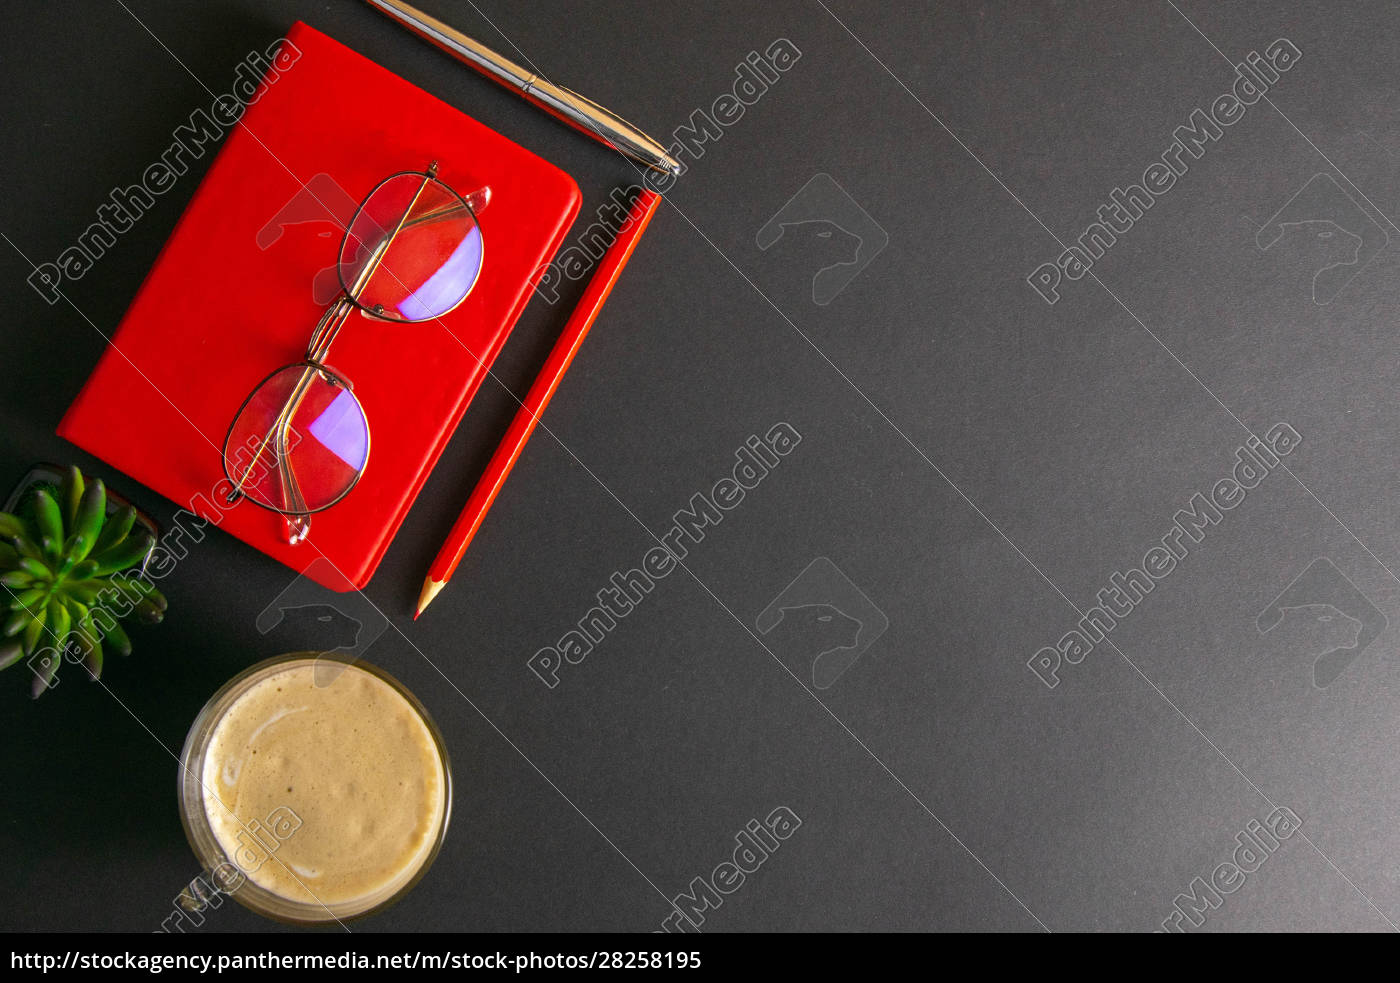 the, red, notebook, stands, on, a - 28258195